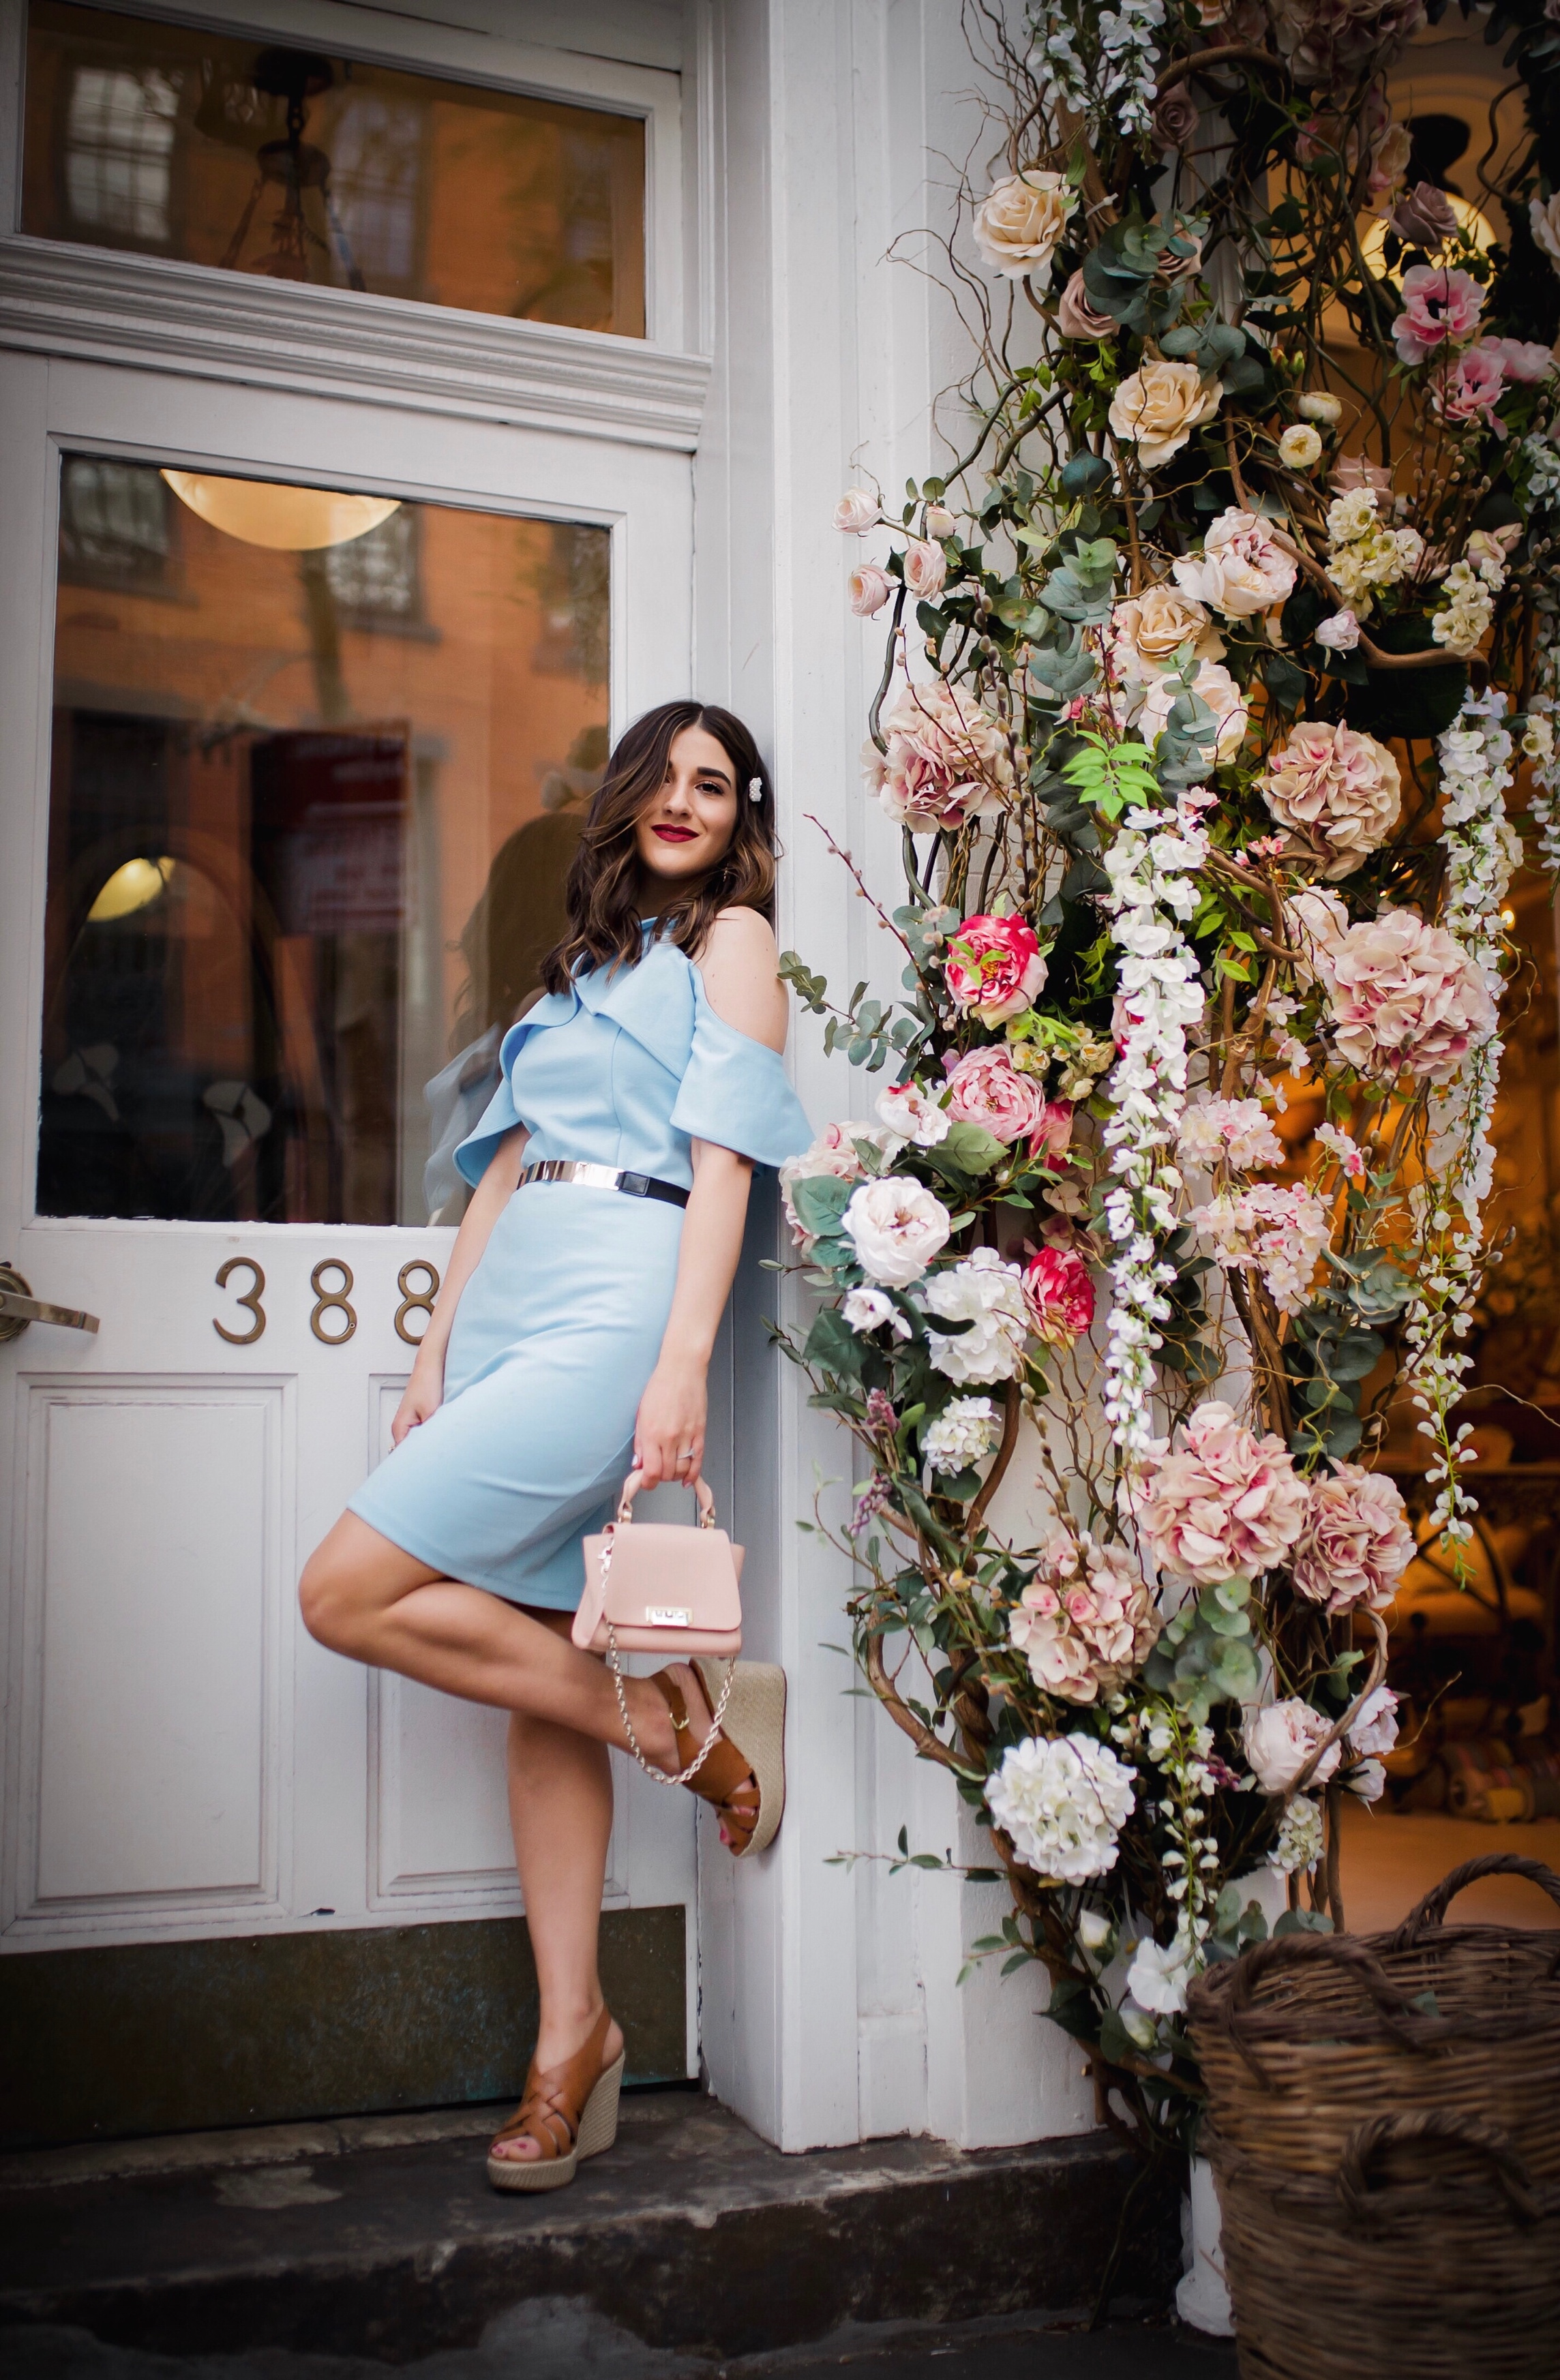 Styling XOXO For Spring Esther Santer Fashion Blog NYC Street Style Blogger Outfit OOTD Trendy Shopping Baby Blue Cold Shoulder Dress Espadrille Wedges Tan Girl Women Barette Pearl Clip Flowers Pretty Beautiful Pink Bag Shoes Belt Shopping Accessories.jpg